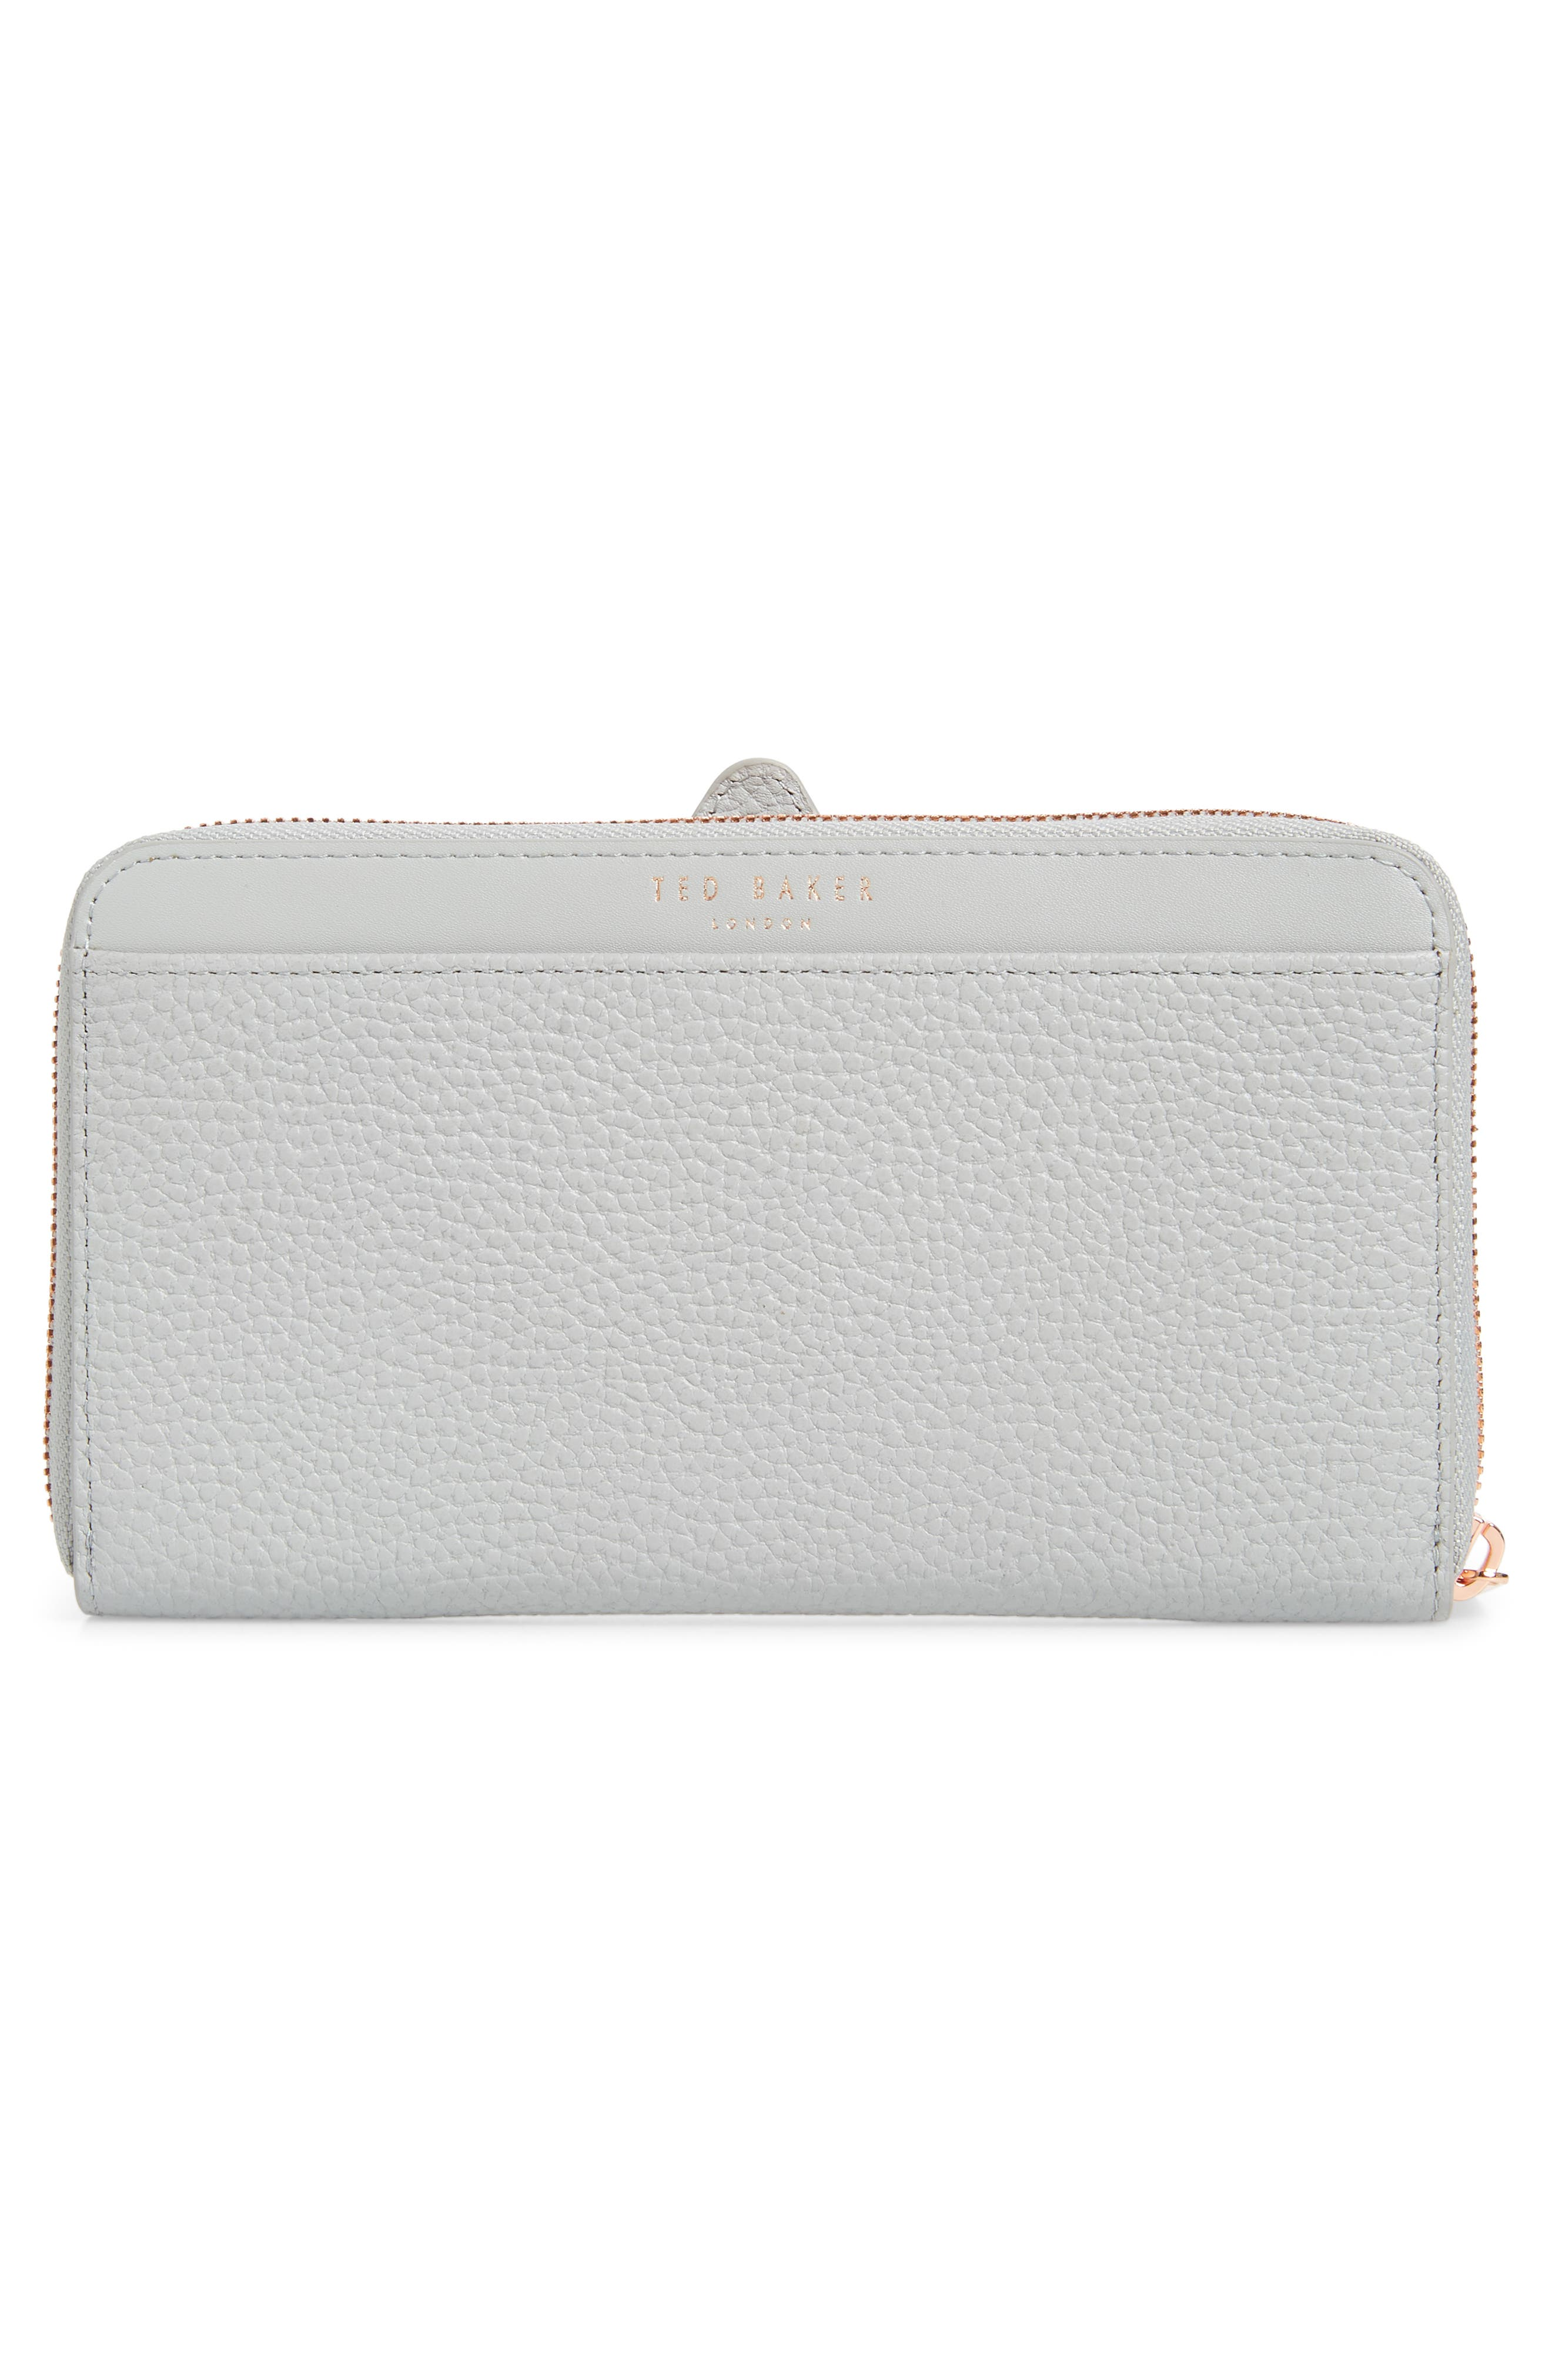 TED BAKER LONDON,                             Rumi Cotton Dog Zip Around Wallet,                             Alternate thumbnail 3, color,                             GREY